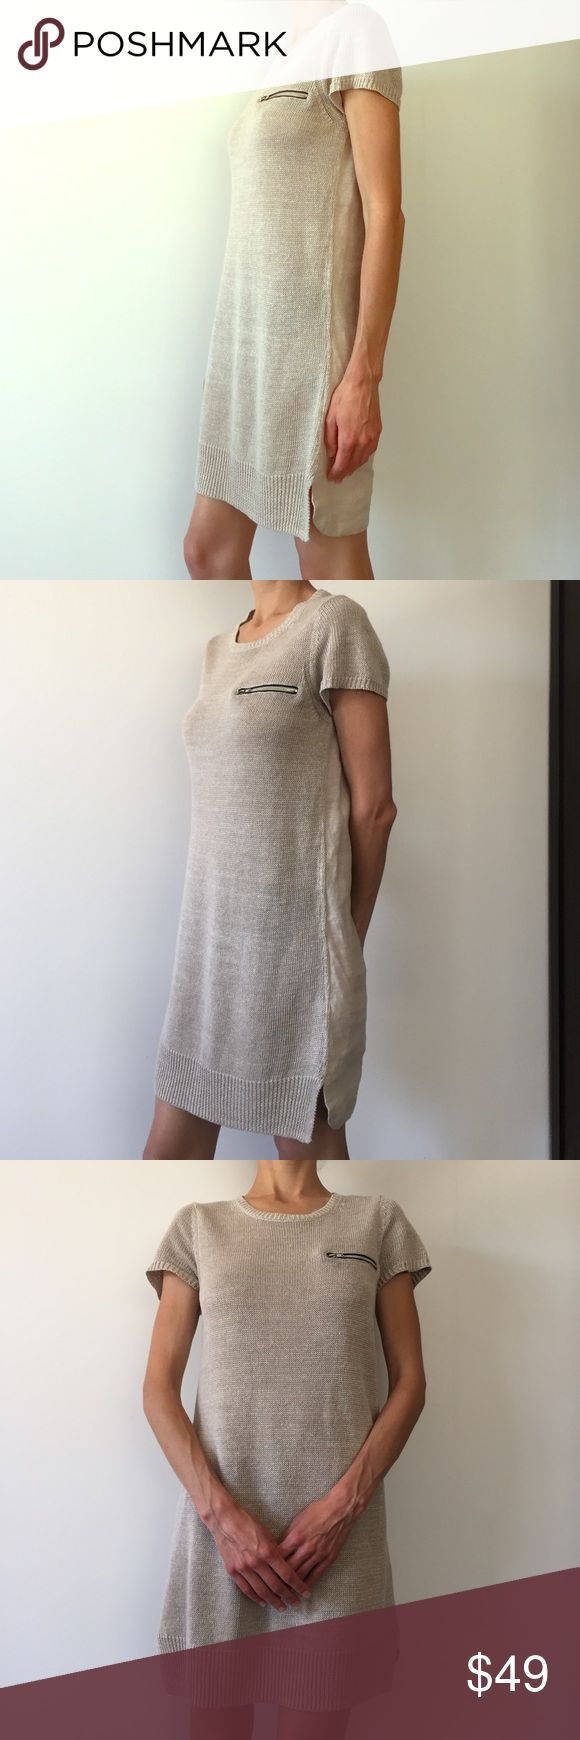 Massimo Dutti mod dress. 100% linen Grey Massimo Dutti dress with decorative silver zipper at chest. Short sleeves. Mid thigh length. European size 30. With original tags, barely worn Massimo Dutti Dresses Mini